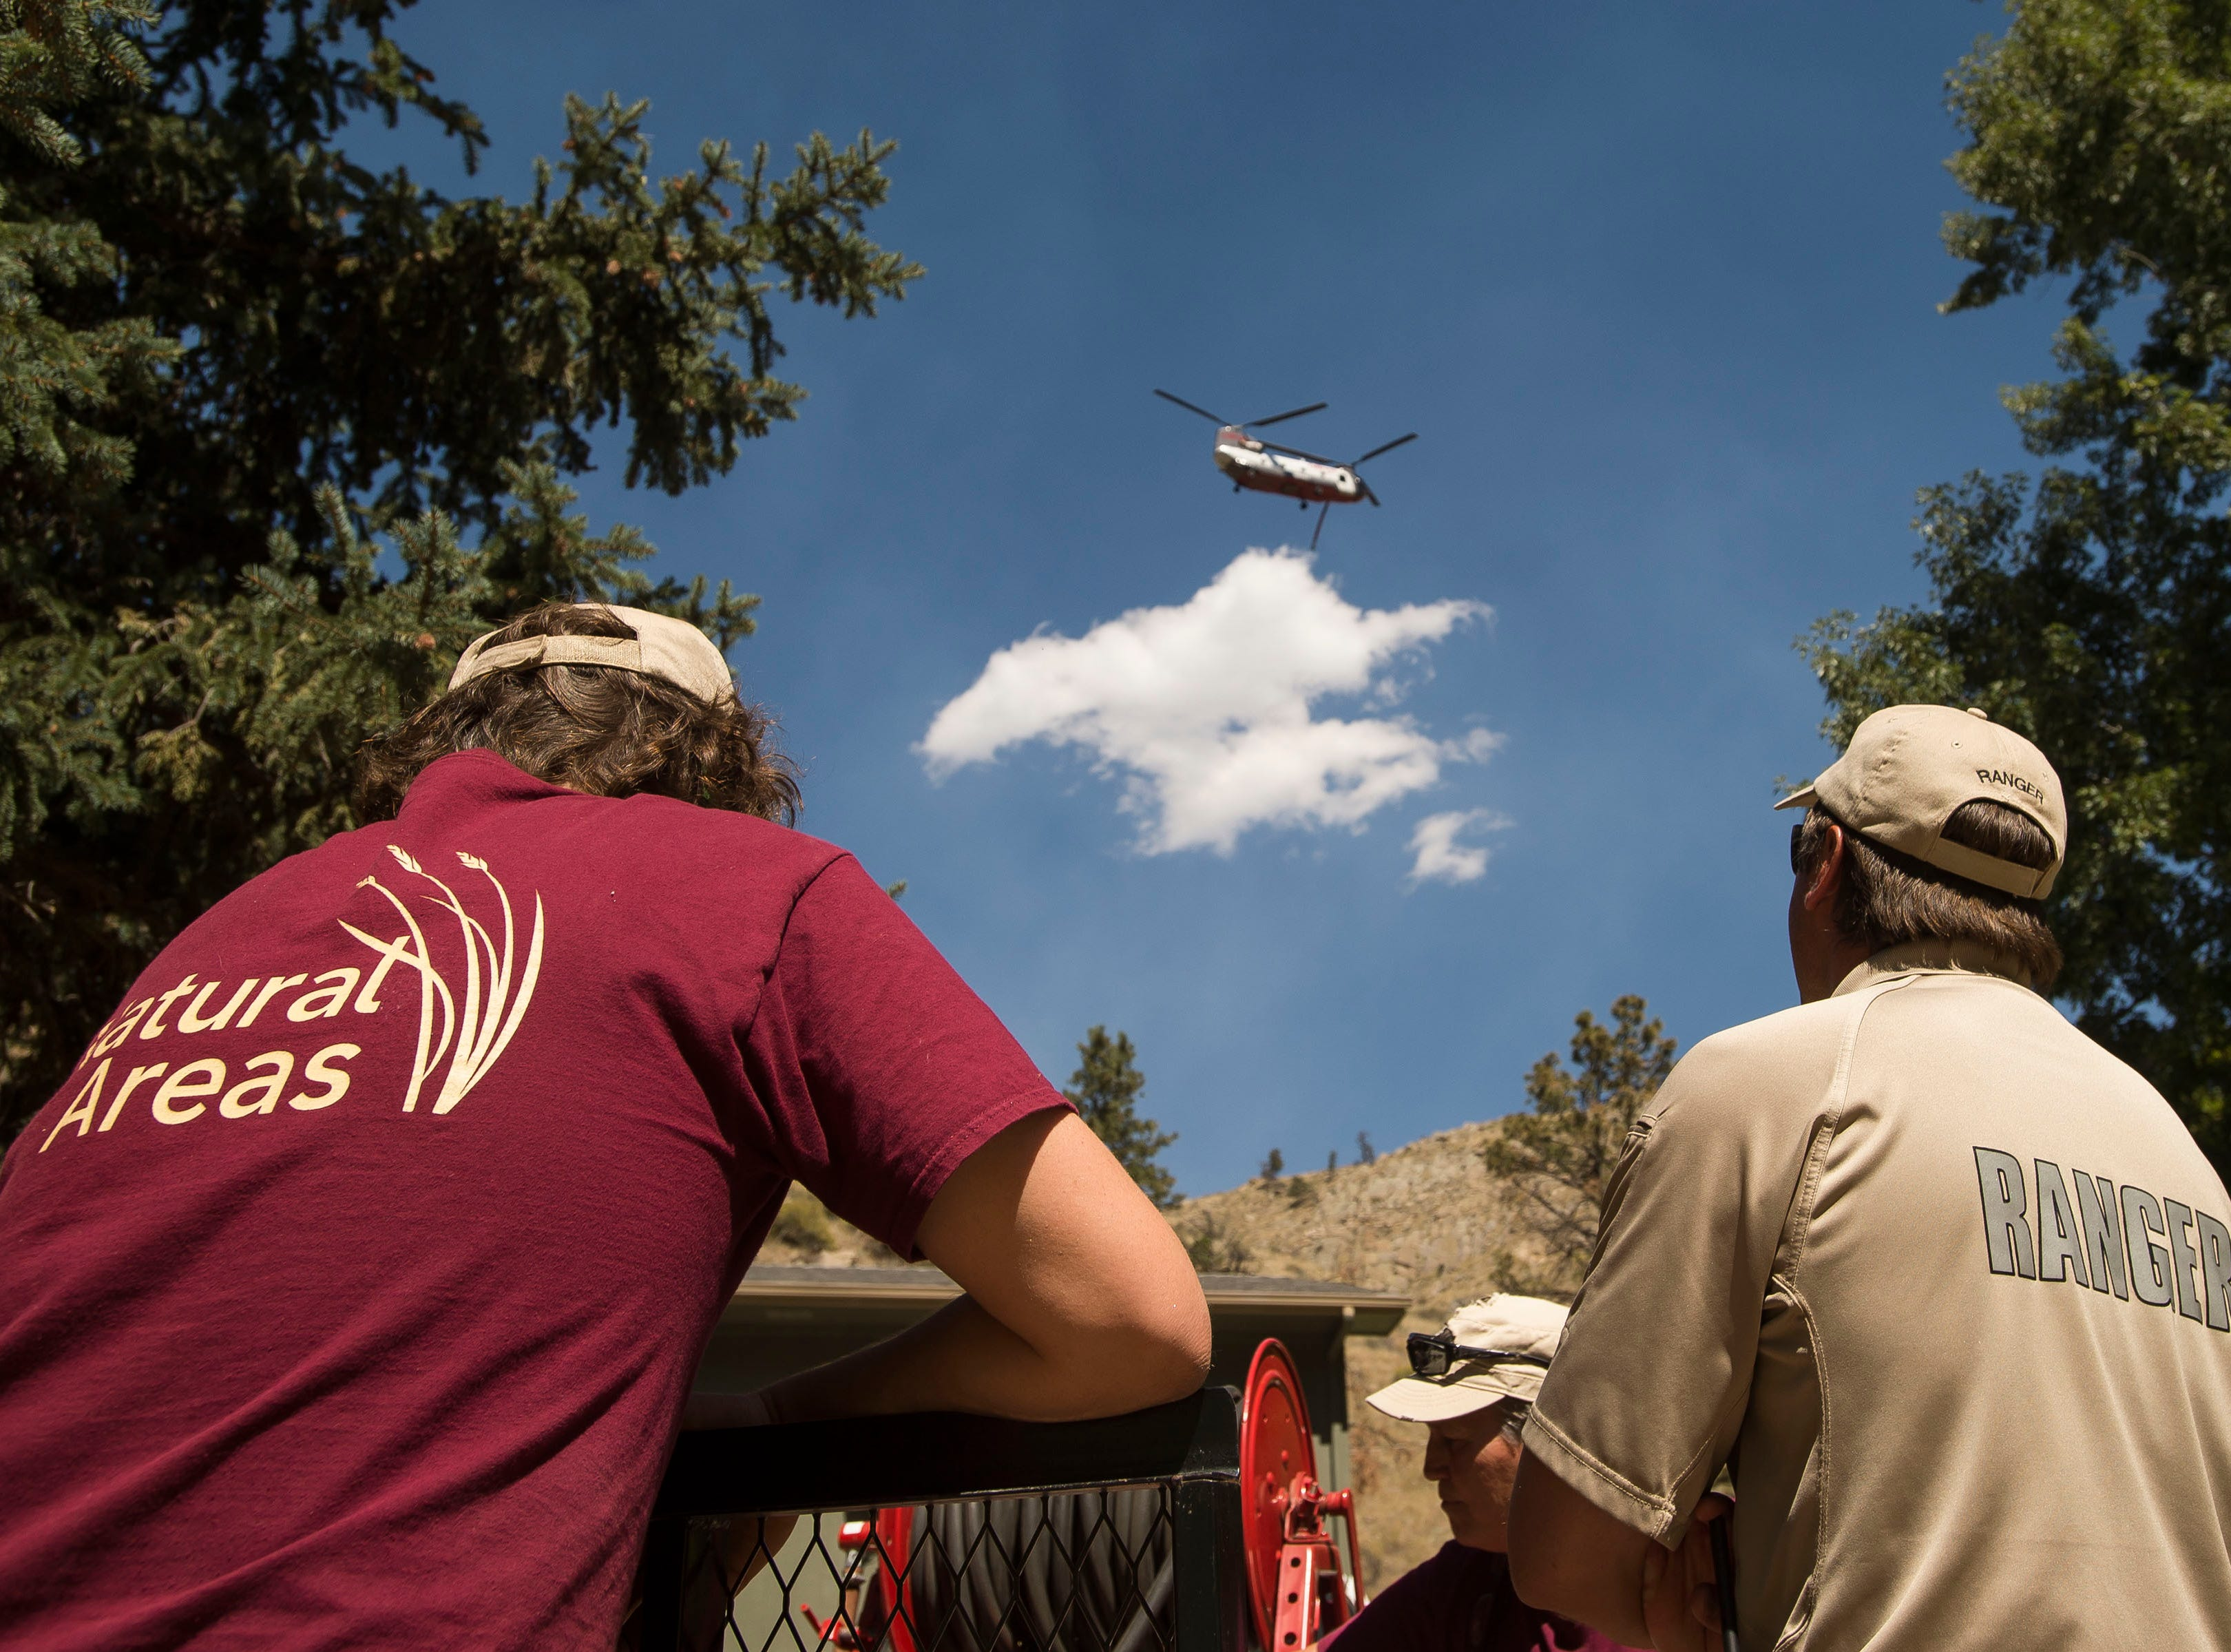 Gateway Park resident Park Ranger Gabe Johnson, right, and City of Fort Collins Natural Area maintenance crew member Peter Garner look up as a large twin rotor helicopter carries water from Seaman reservoir to the fire nearby on Wednesday, Sept. 12, 2018, at Gateway Park in Larimer County, Colo.